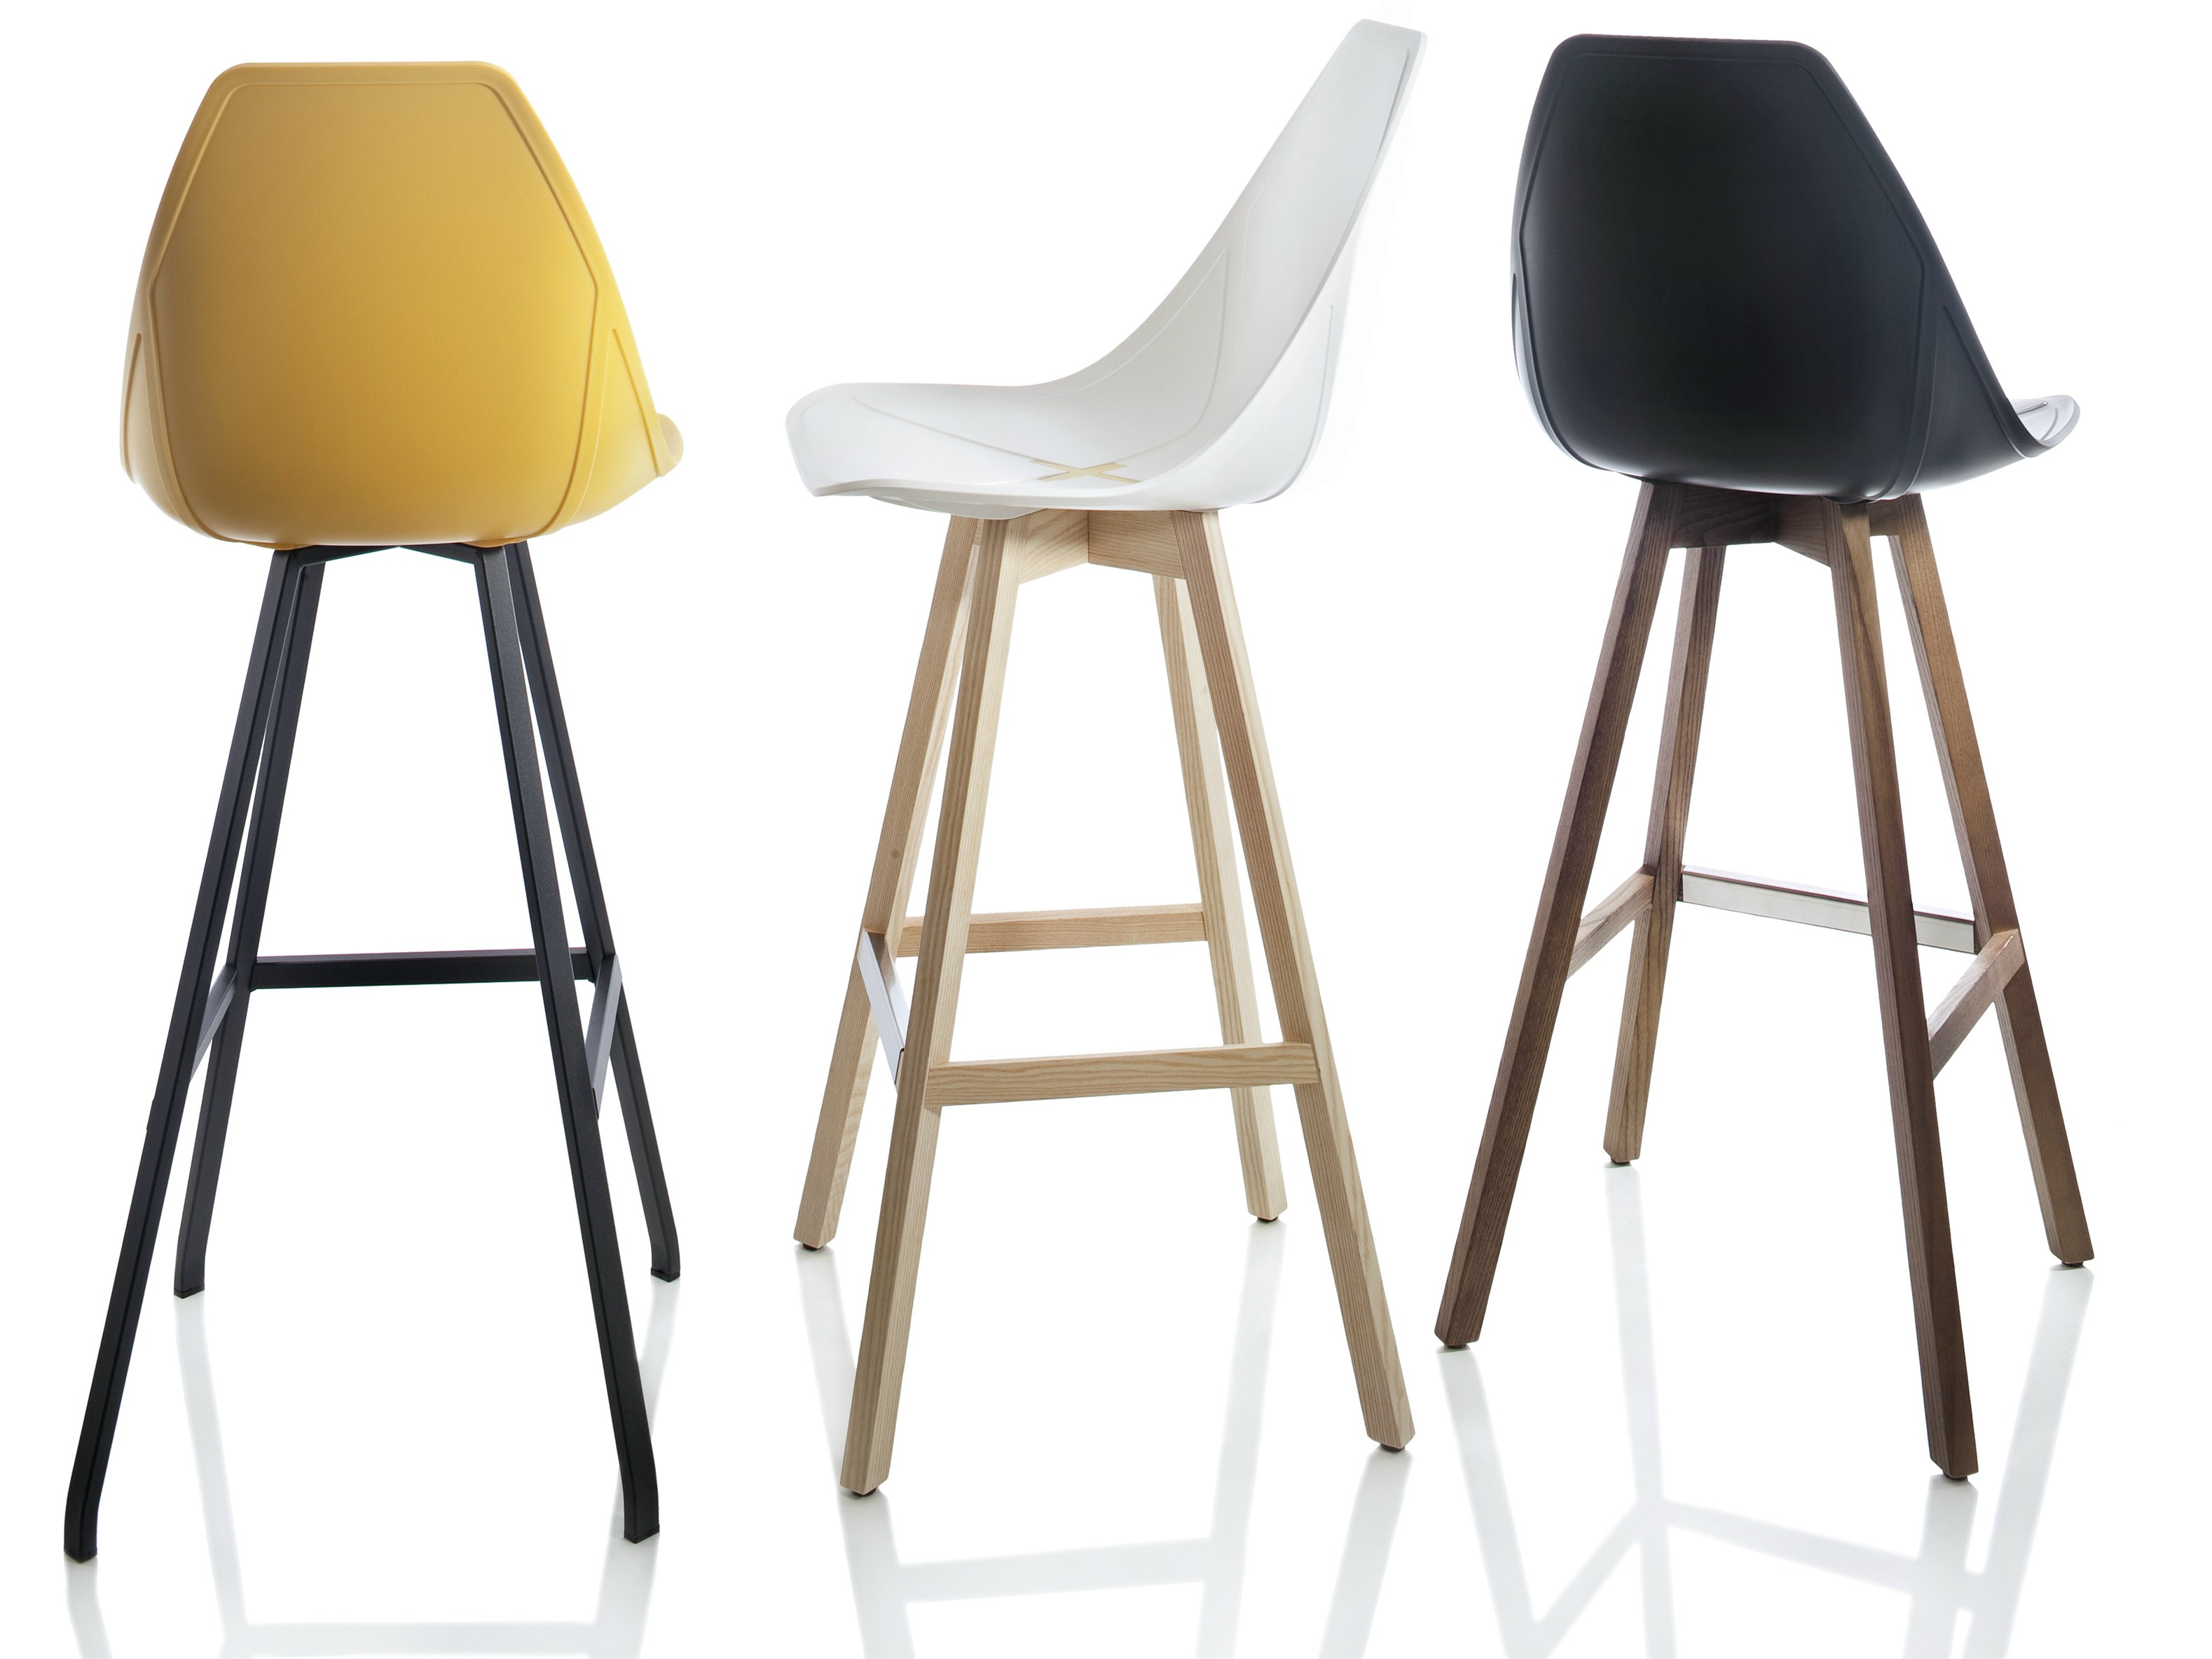 x stool counter stool x stool collection by alma design design mario mazzer. Black Bedroom Furniture Sets. Home Design Ideas